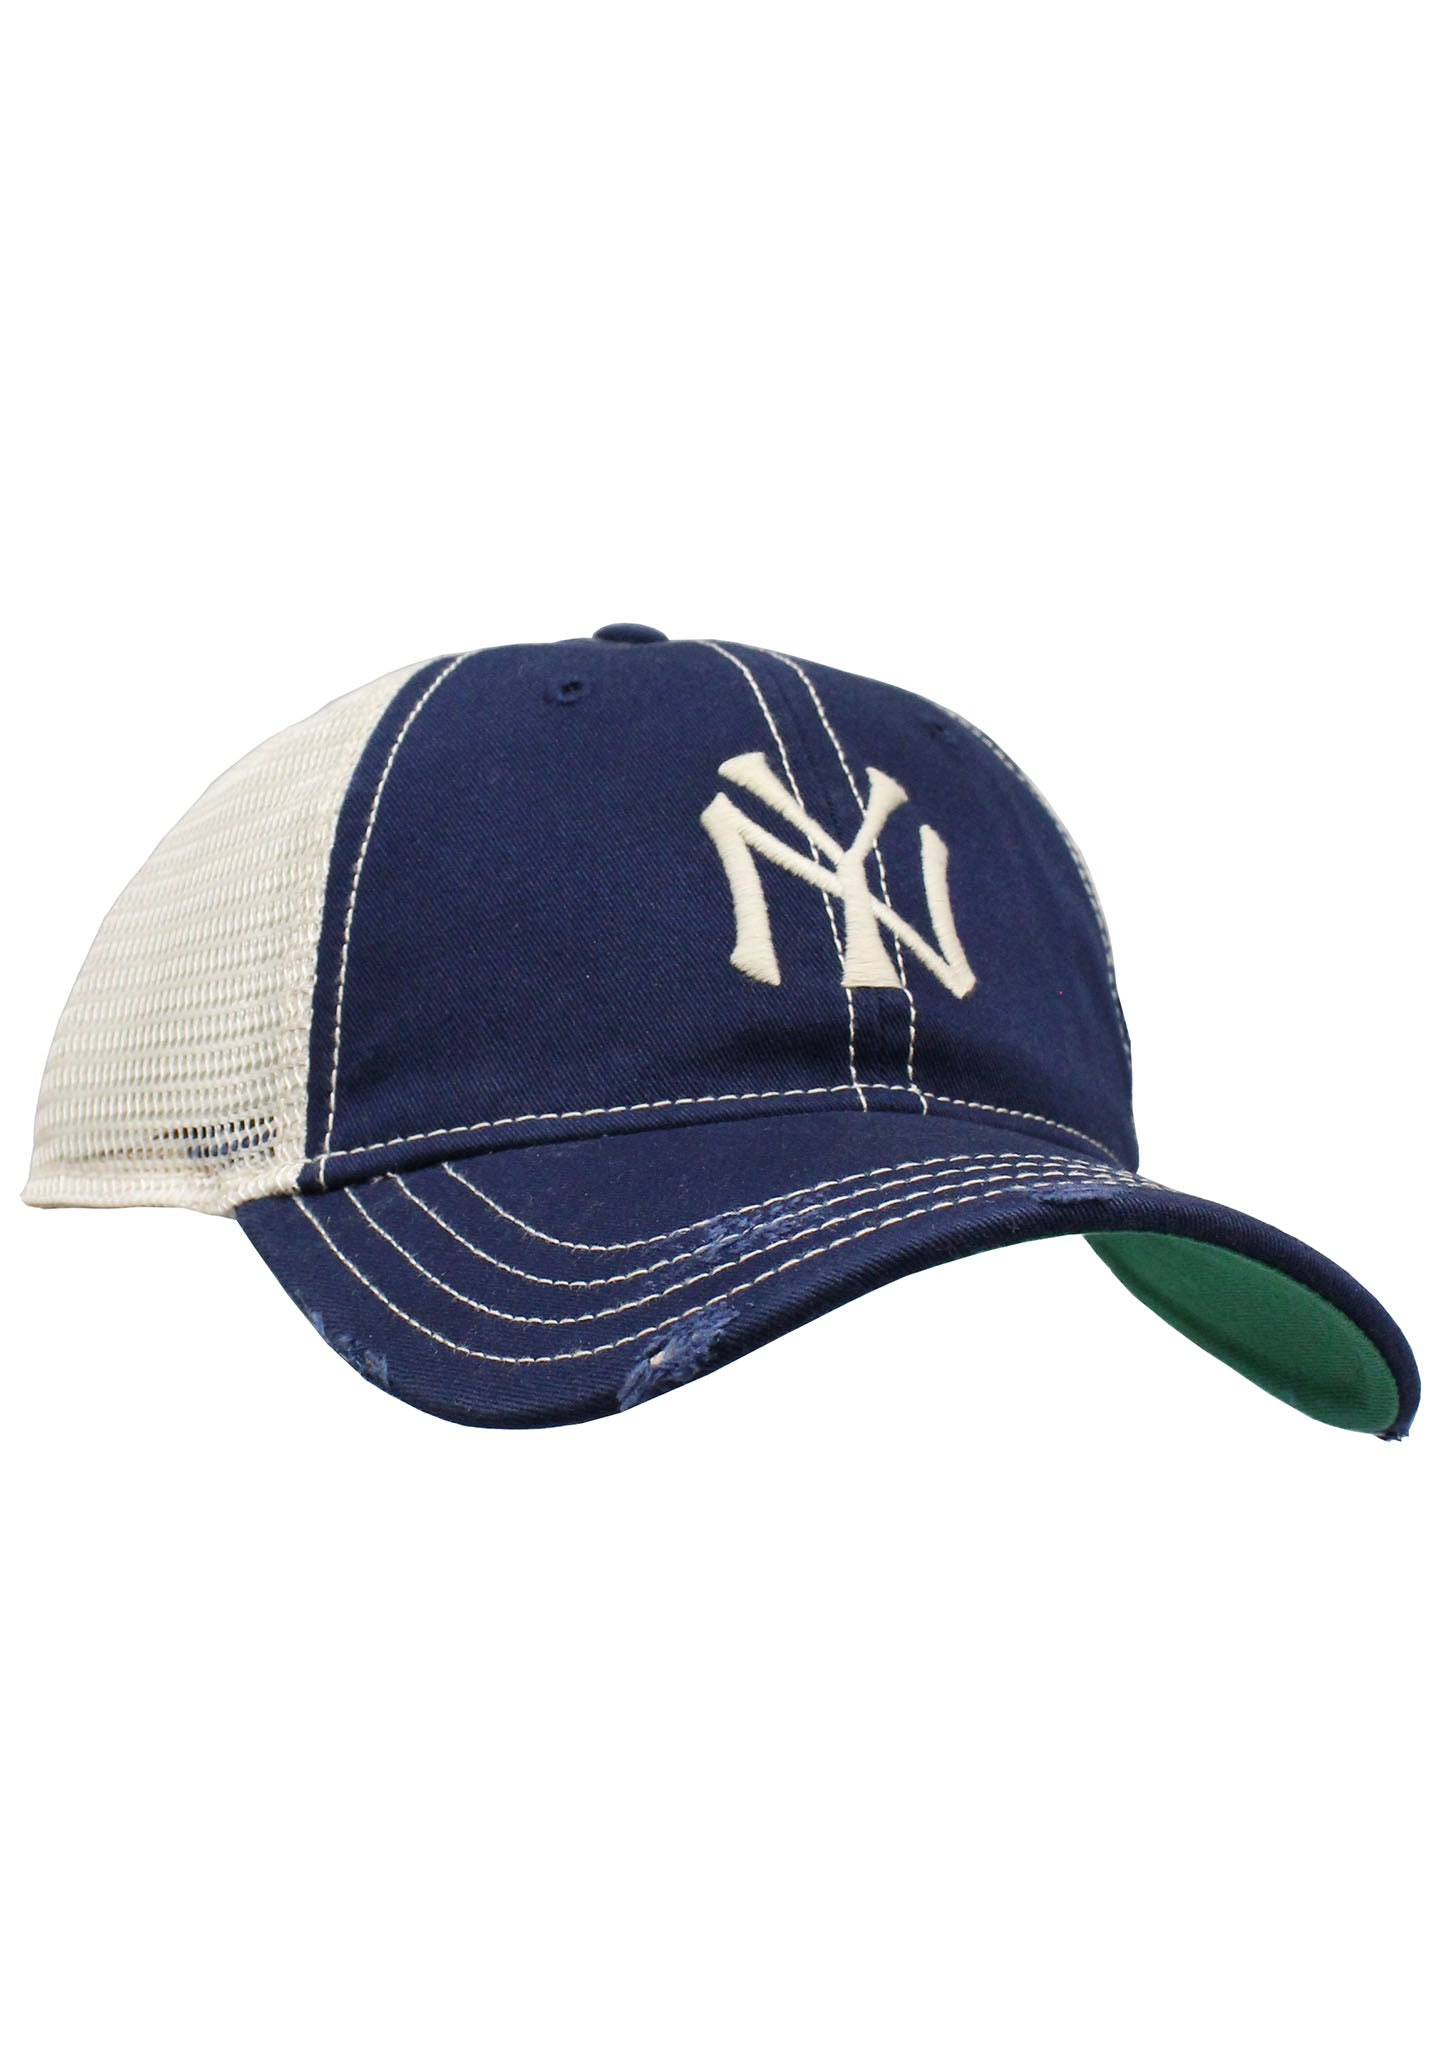 bb6b66724b4 New York Yankees Recreational Hat